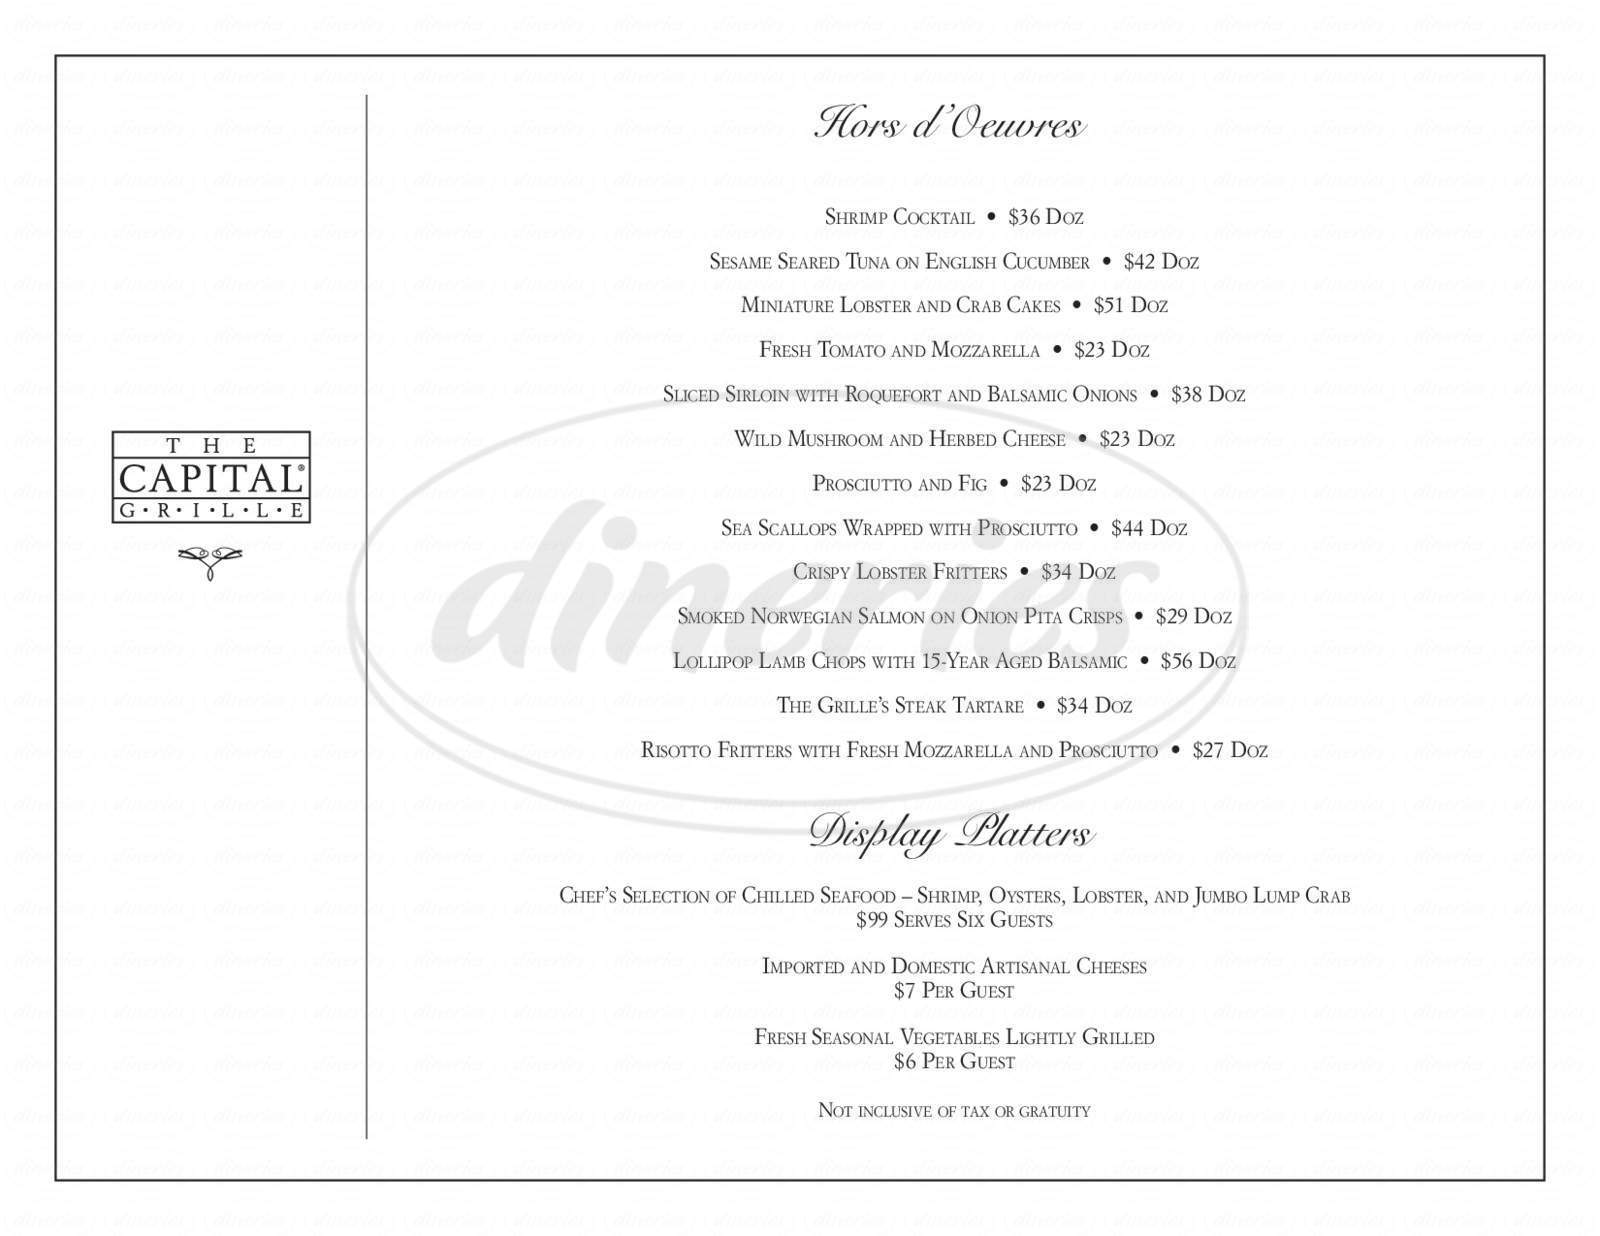 menu for The Capital Grille